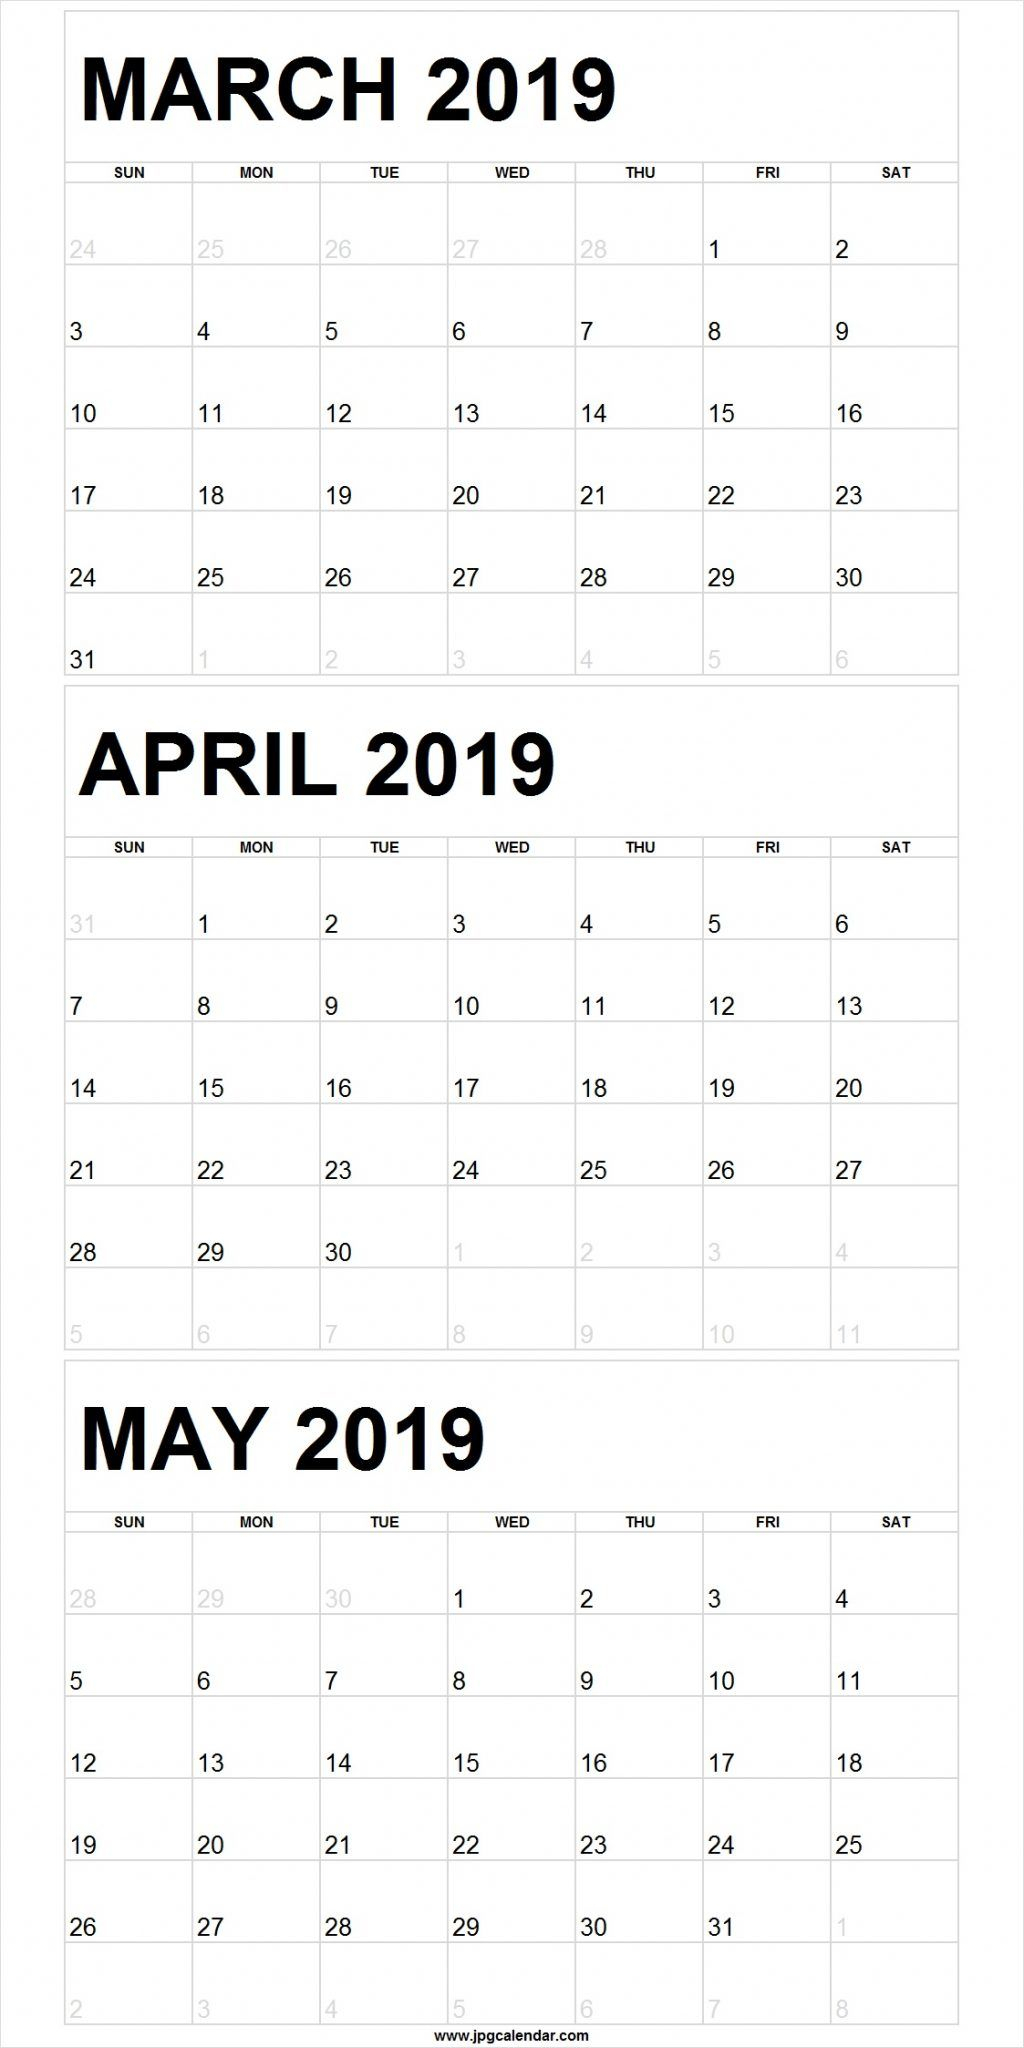 Blank March To May 2019 Calendar Printable | 250+ Free Monthly for Printable 3 Month April May June Calendar Template